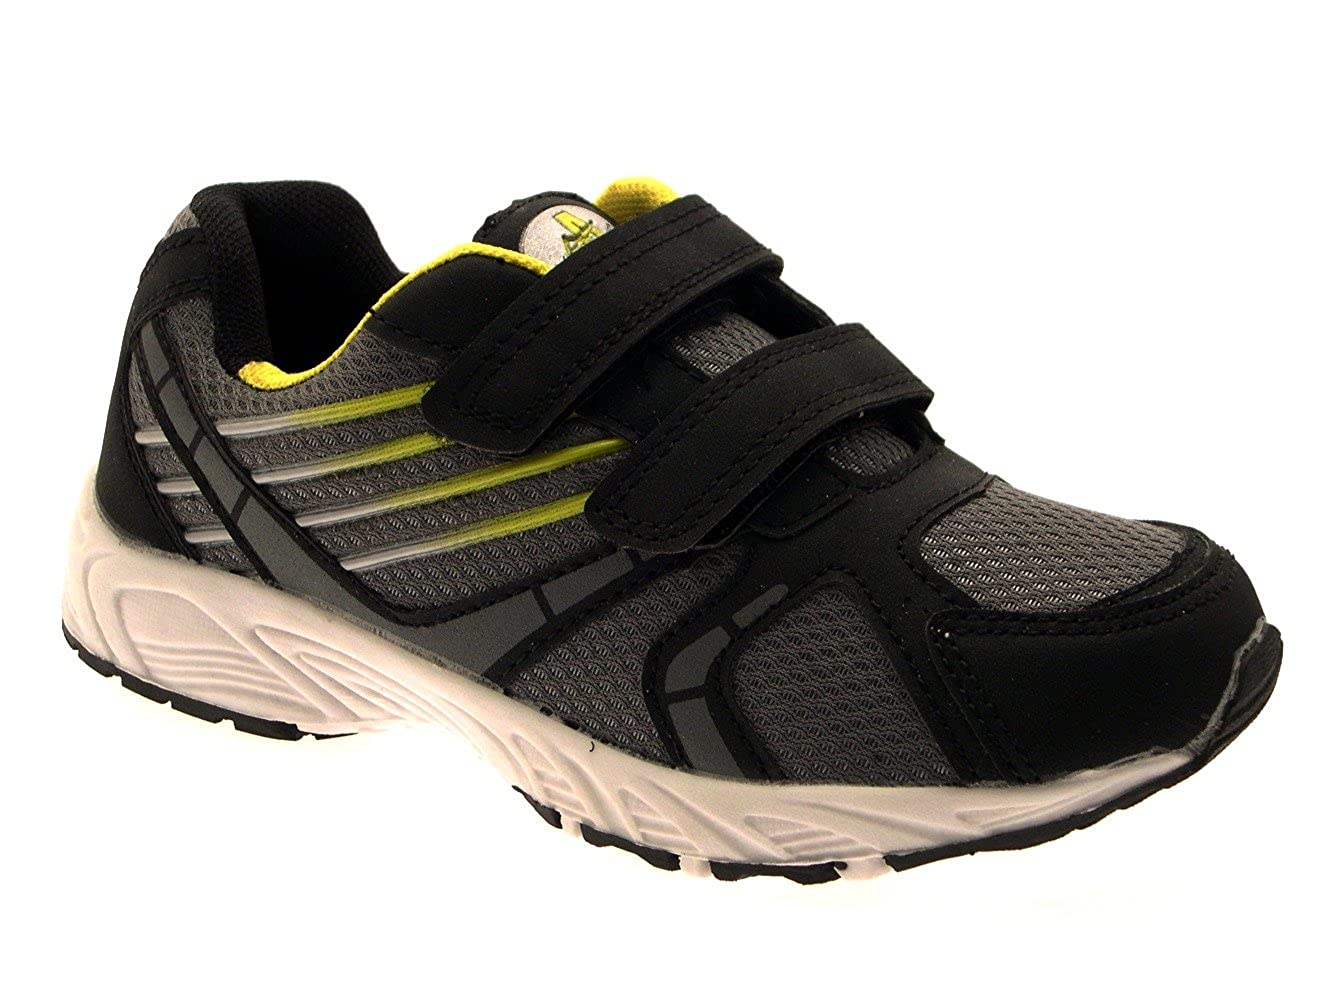 CHILDRENS UNISEX KIDS BOYS GIRLS Hook And Loop TRAINERS RUNNING SPORTS  SHOES PUMPS CUSHIONED GREY BLACK YELLOW SIZE 11  Amazon.co.uk  Shoes   Bags acbd7e629